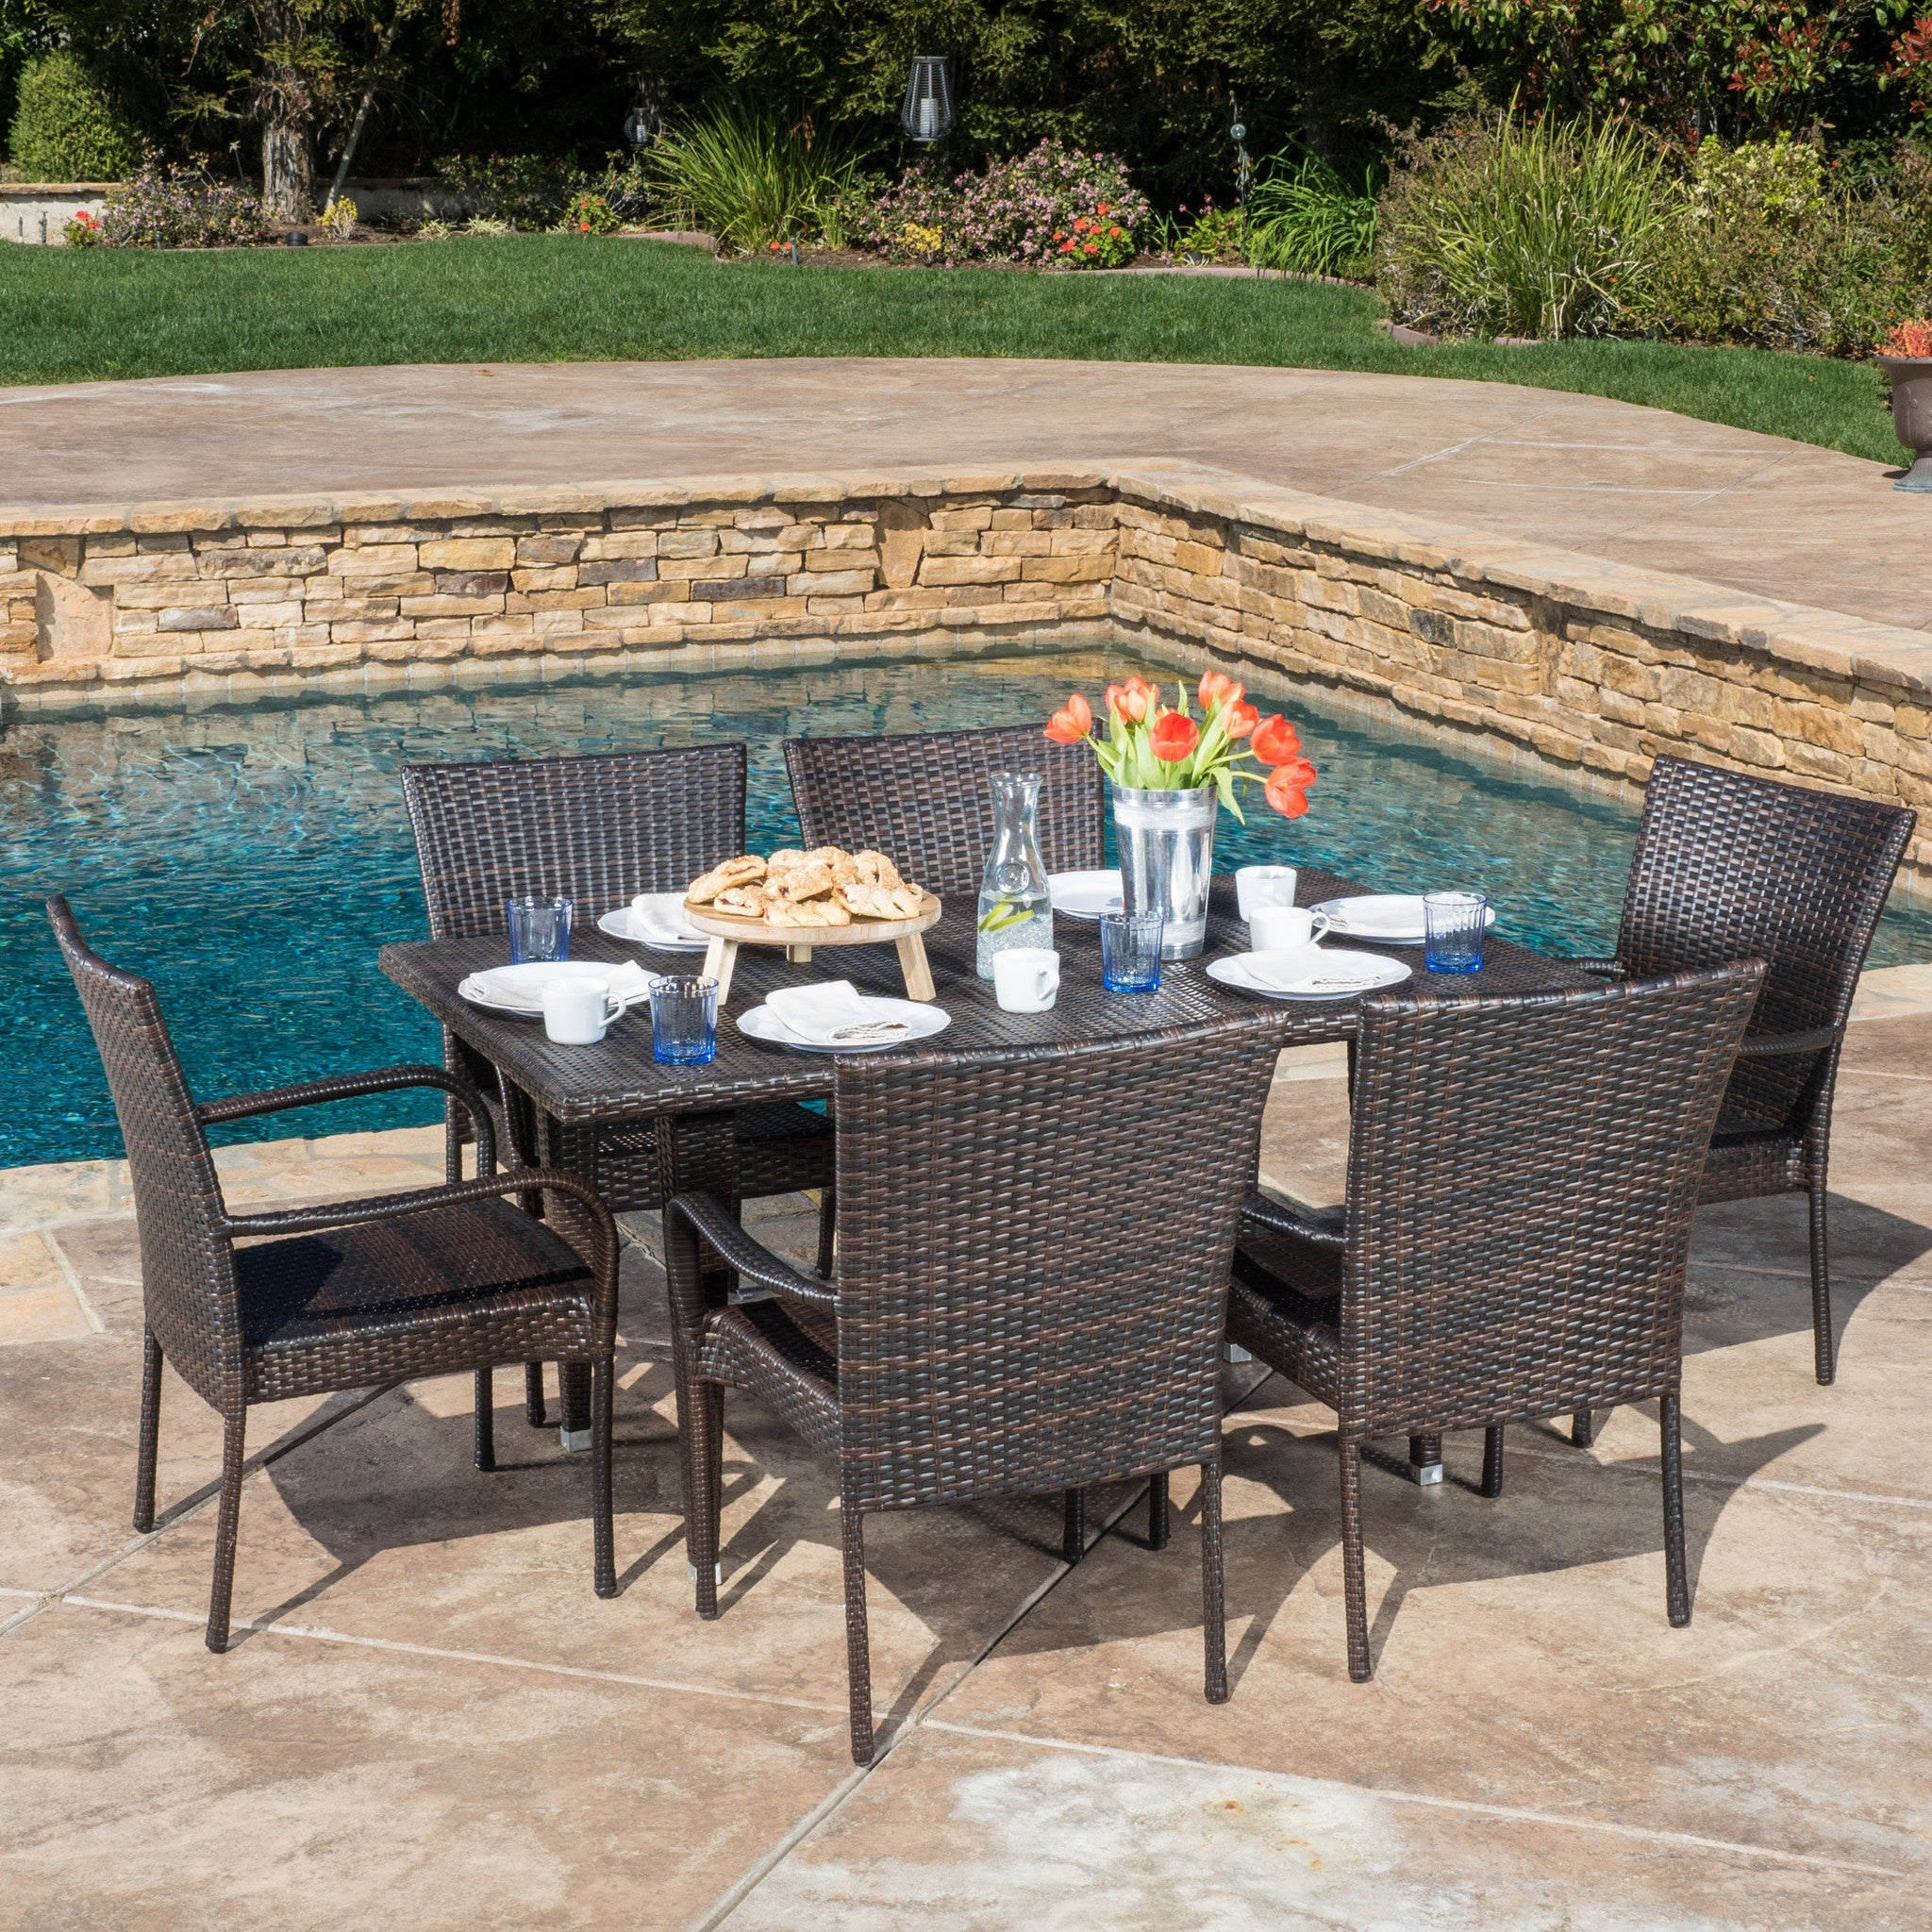 Yomunt Contemporary Outdoor Dining Set foto